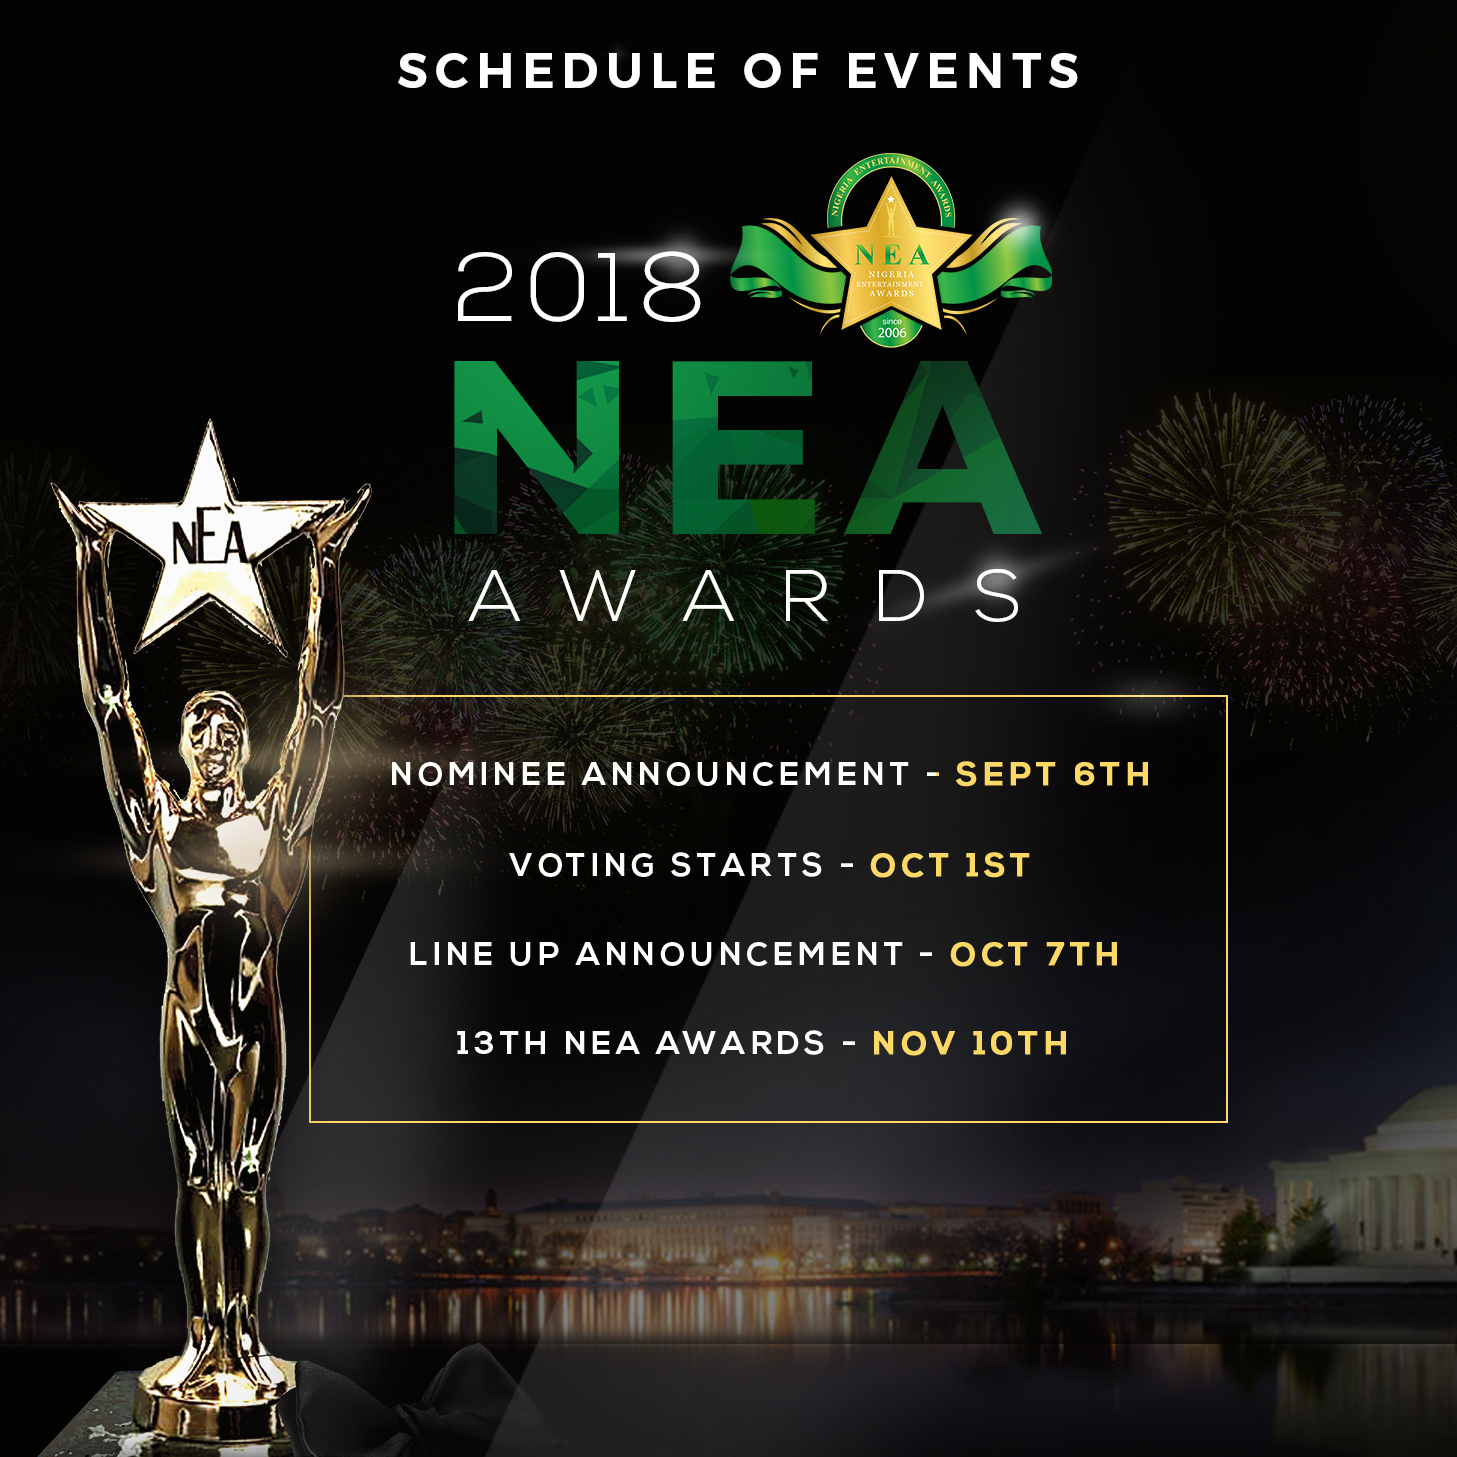 2018-NEA-SCHEDULE-OF-EVENTS-1-